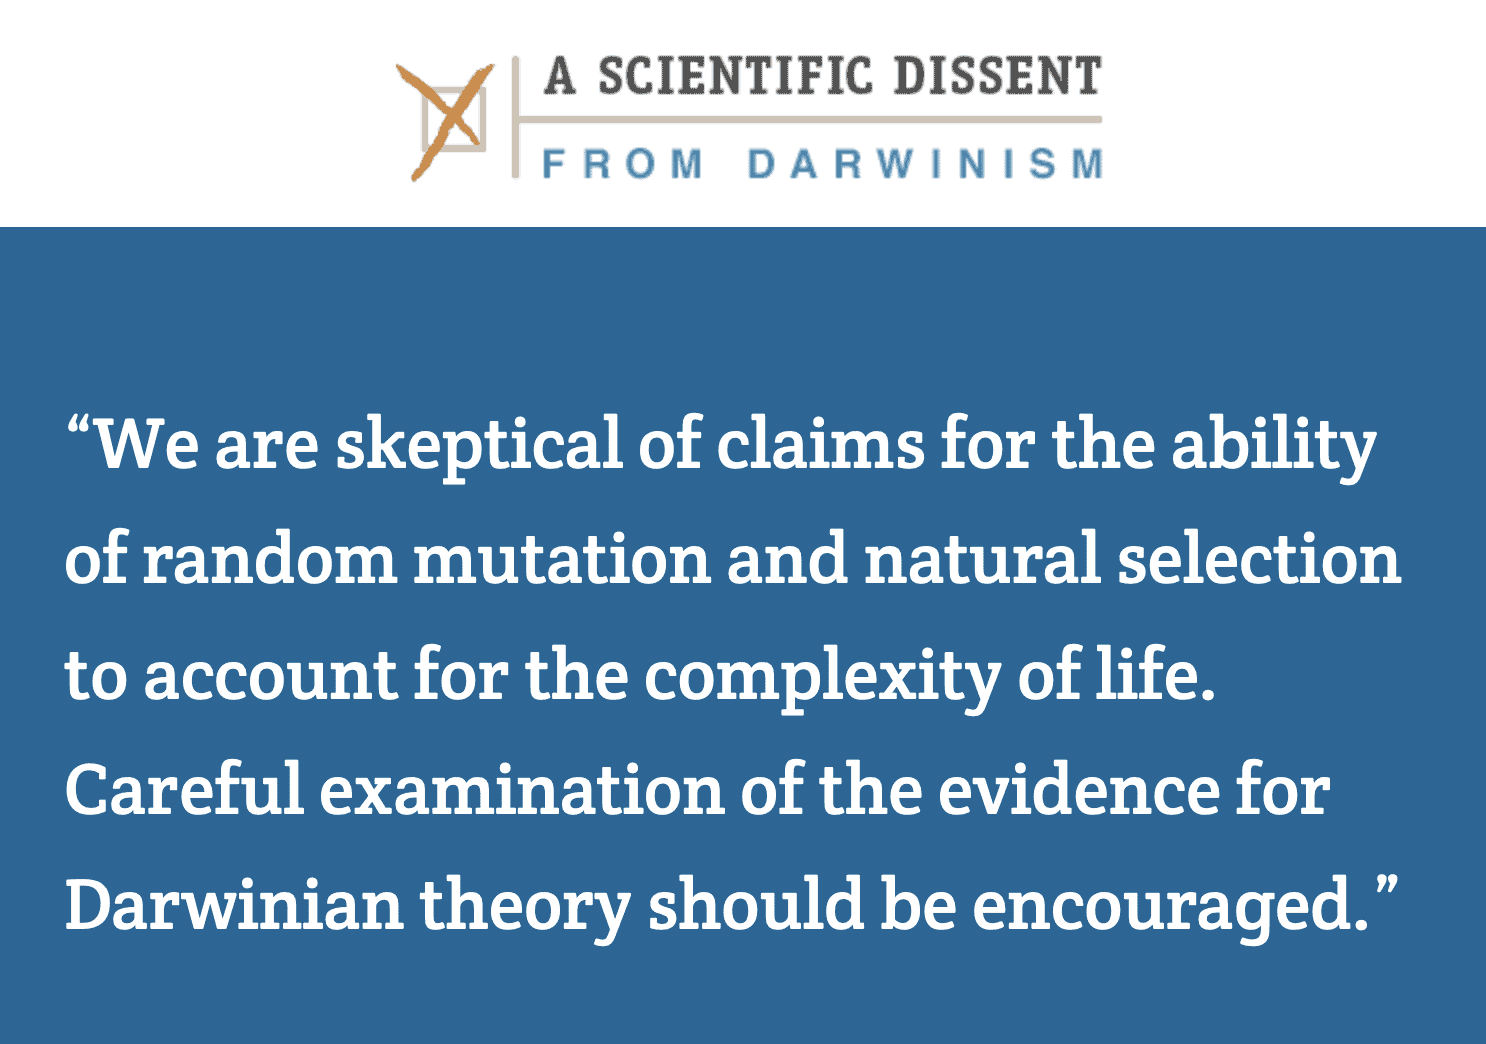 1230 Scientists Dissent from Following Darwin!  See the List!